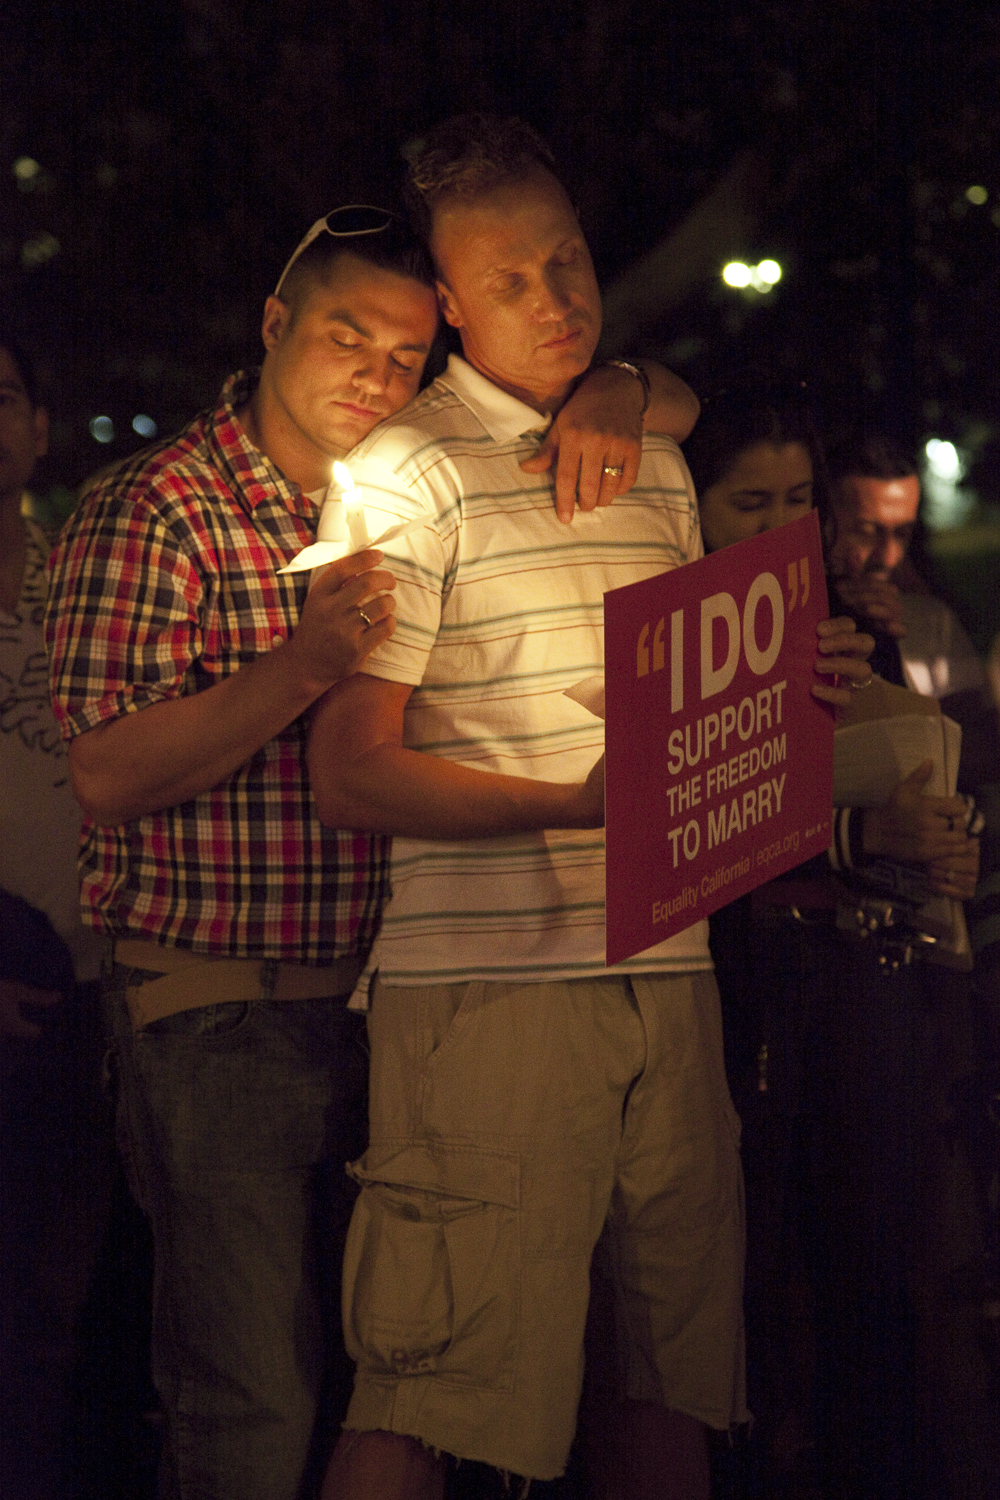 "Gay marriage ban declared unconstitutional in California. Several hundred people gathered for a candlelight vigil on Olivera Street near downtown Los Angeles, on the evening of August 4, 2010, to celebrate a California federal judge's ruling that Proposition 8, the state's ban on same-sex marriage that was passed by voters last November, was unconstitutional. The ""Day of Decision"" vigil was organized before the ruling was announced for opponents of Proposition 8 to either support or protest the impending decision. Both sides had pledged to appeal the ruling depending which way it went. Olivera Street, Los Angeles, California, USA"